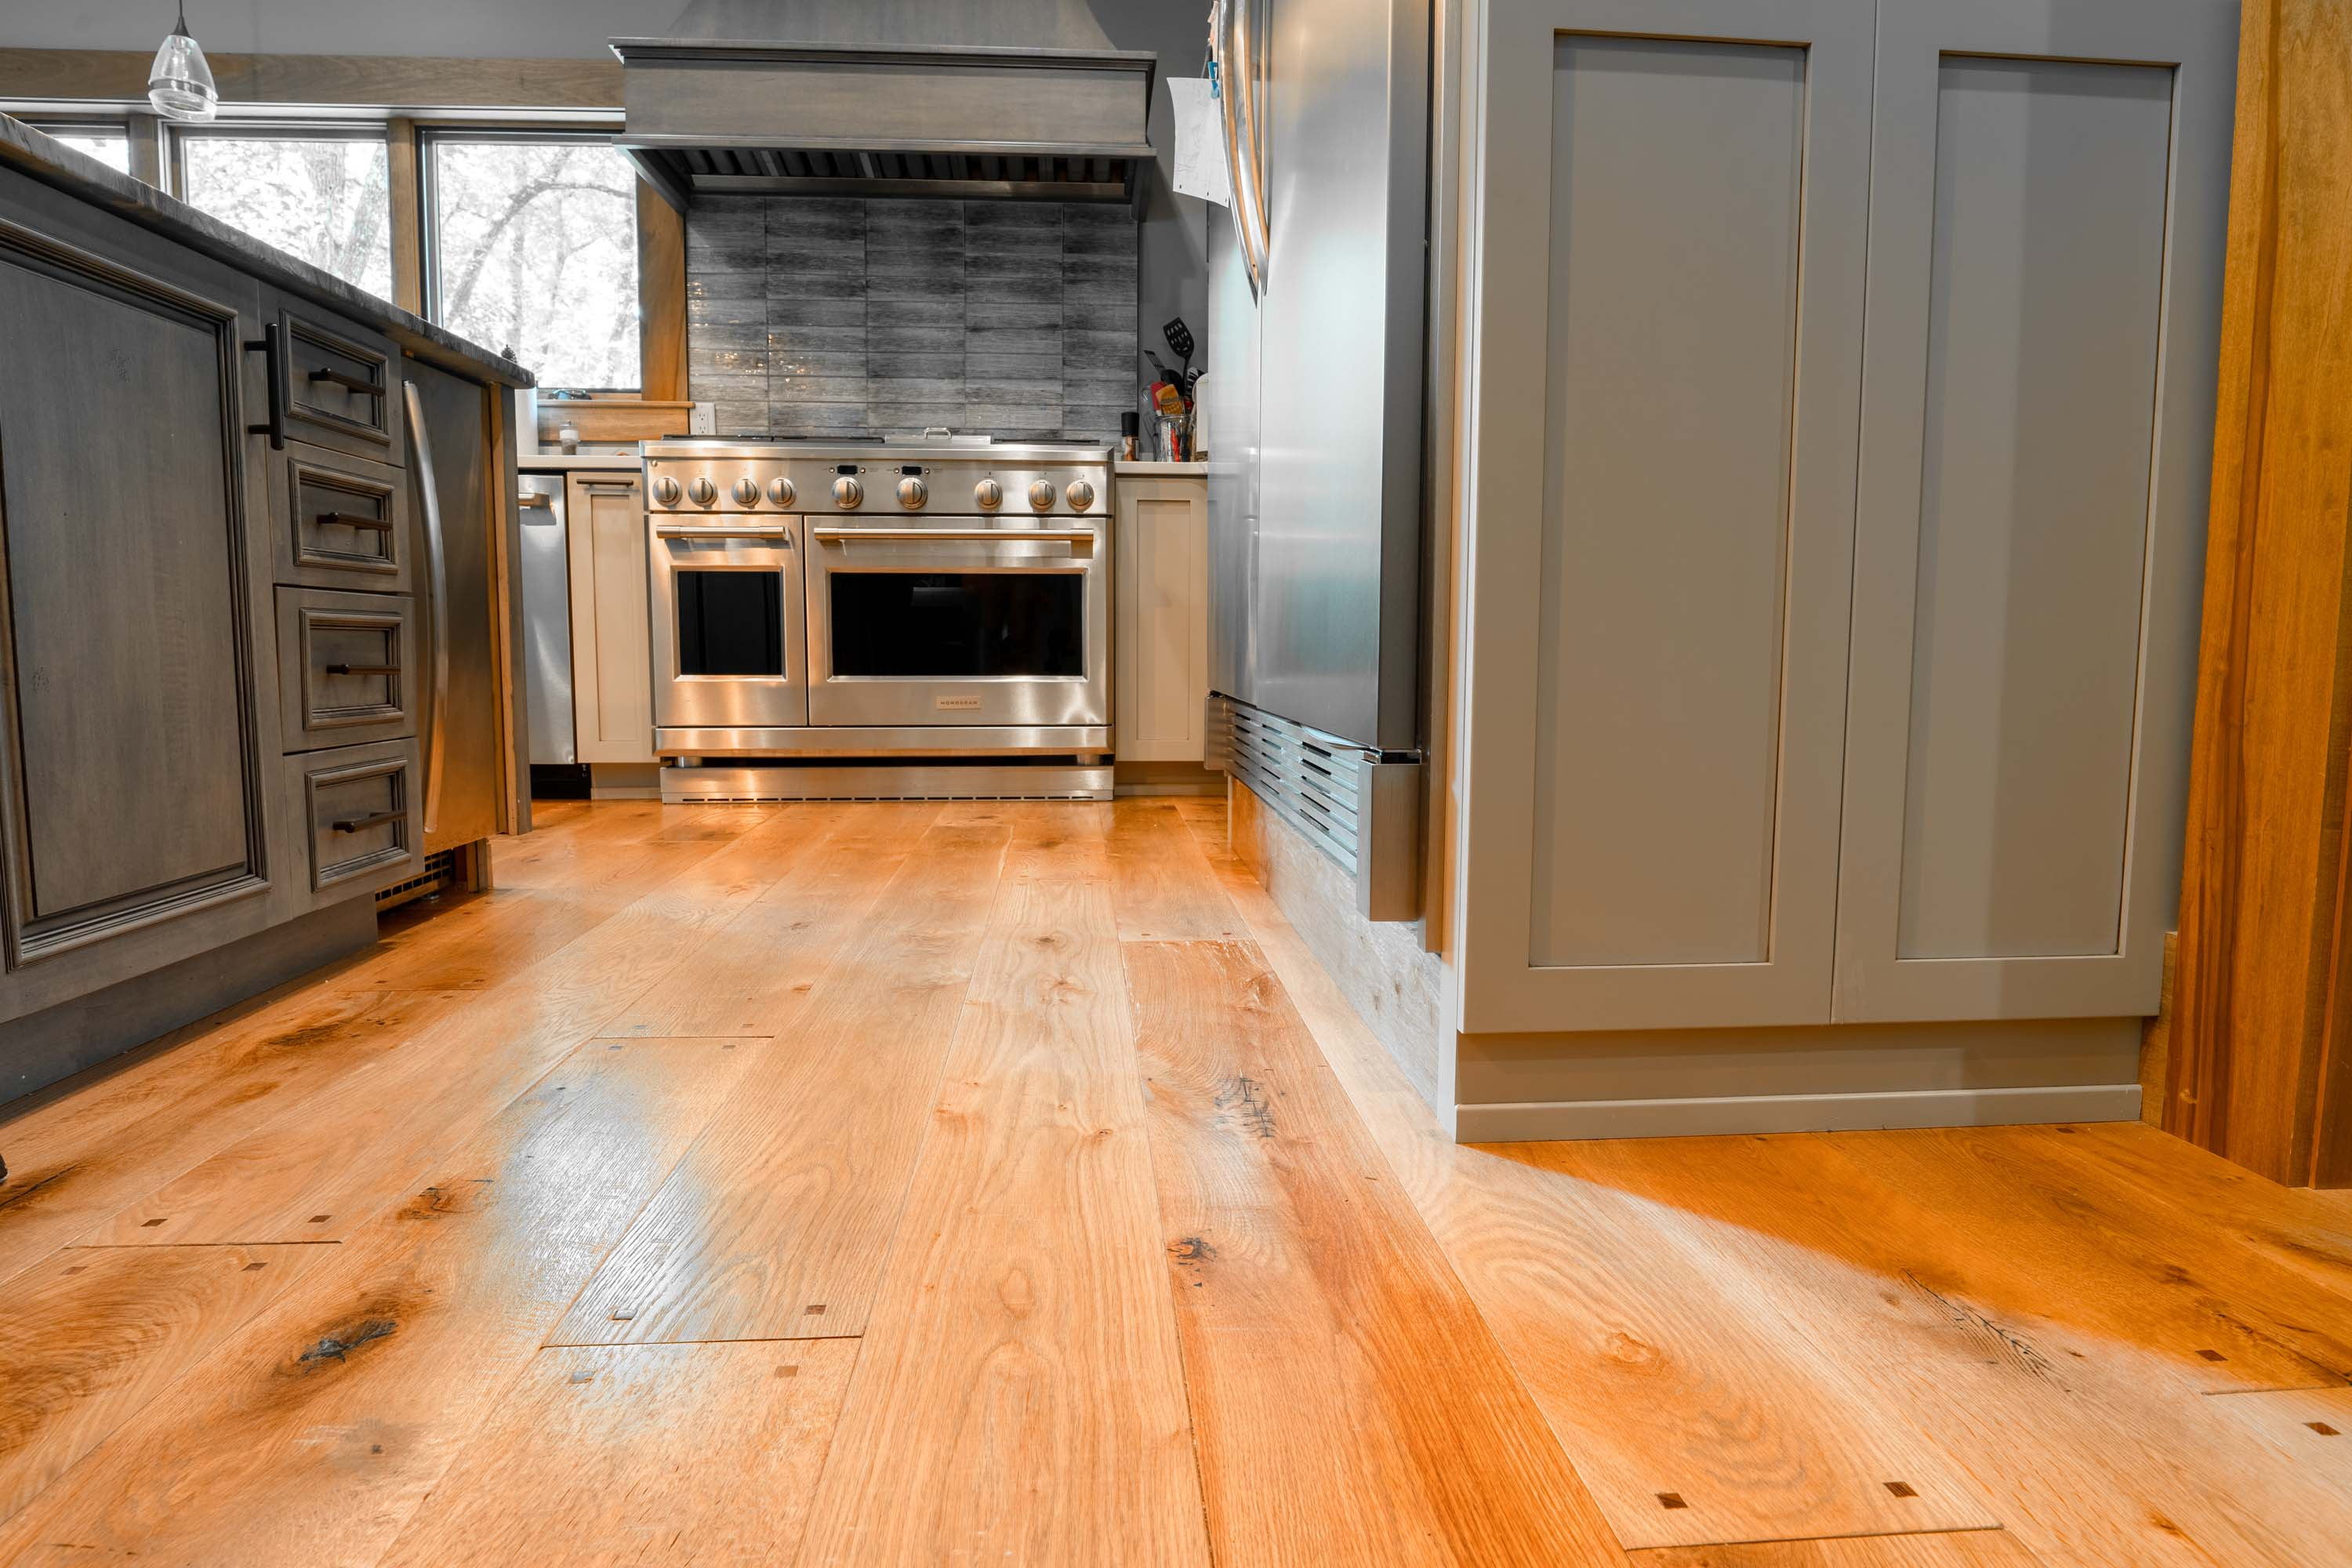 another angle of the kitchen with Montana Plank Reclaimed Wood Flooring by Tennessee Wood Flooring. Our Reclaimed Wood Floors are gathered and made in the hills of sevierville, tennessee.